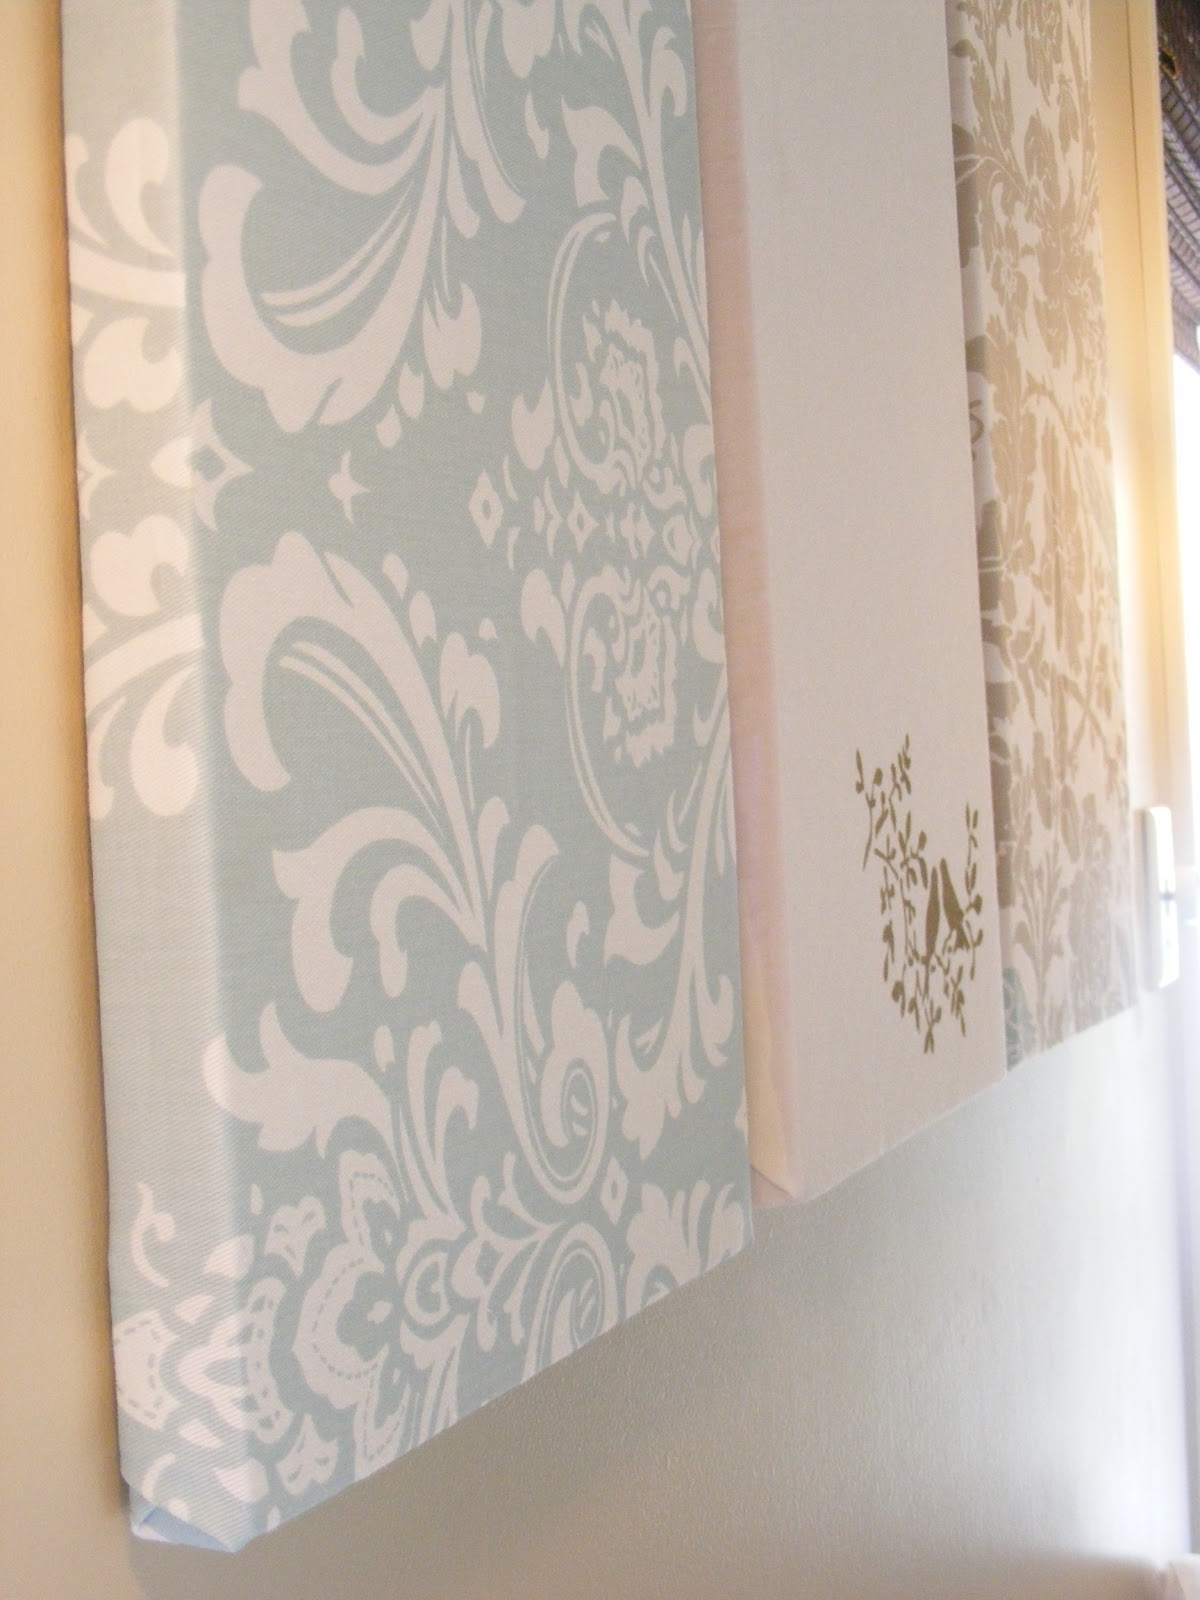 The Complete Guide To Imperfect Homemaking: Simple, Thrifty Diy Art Throughout Most Recently Released Fabric Wrapped Wall Art (View 5 of 15)